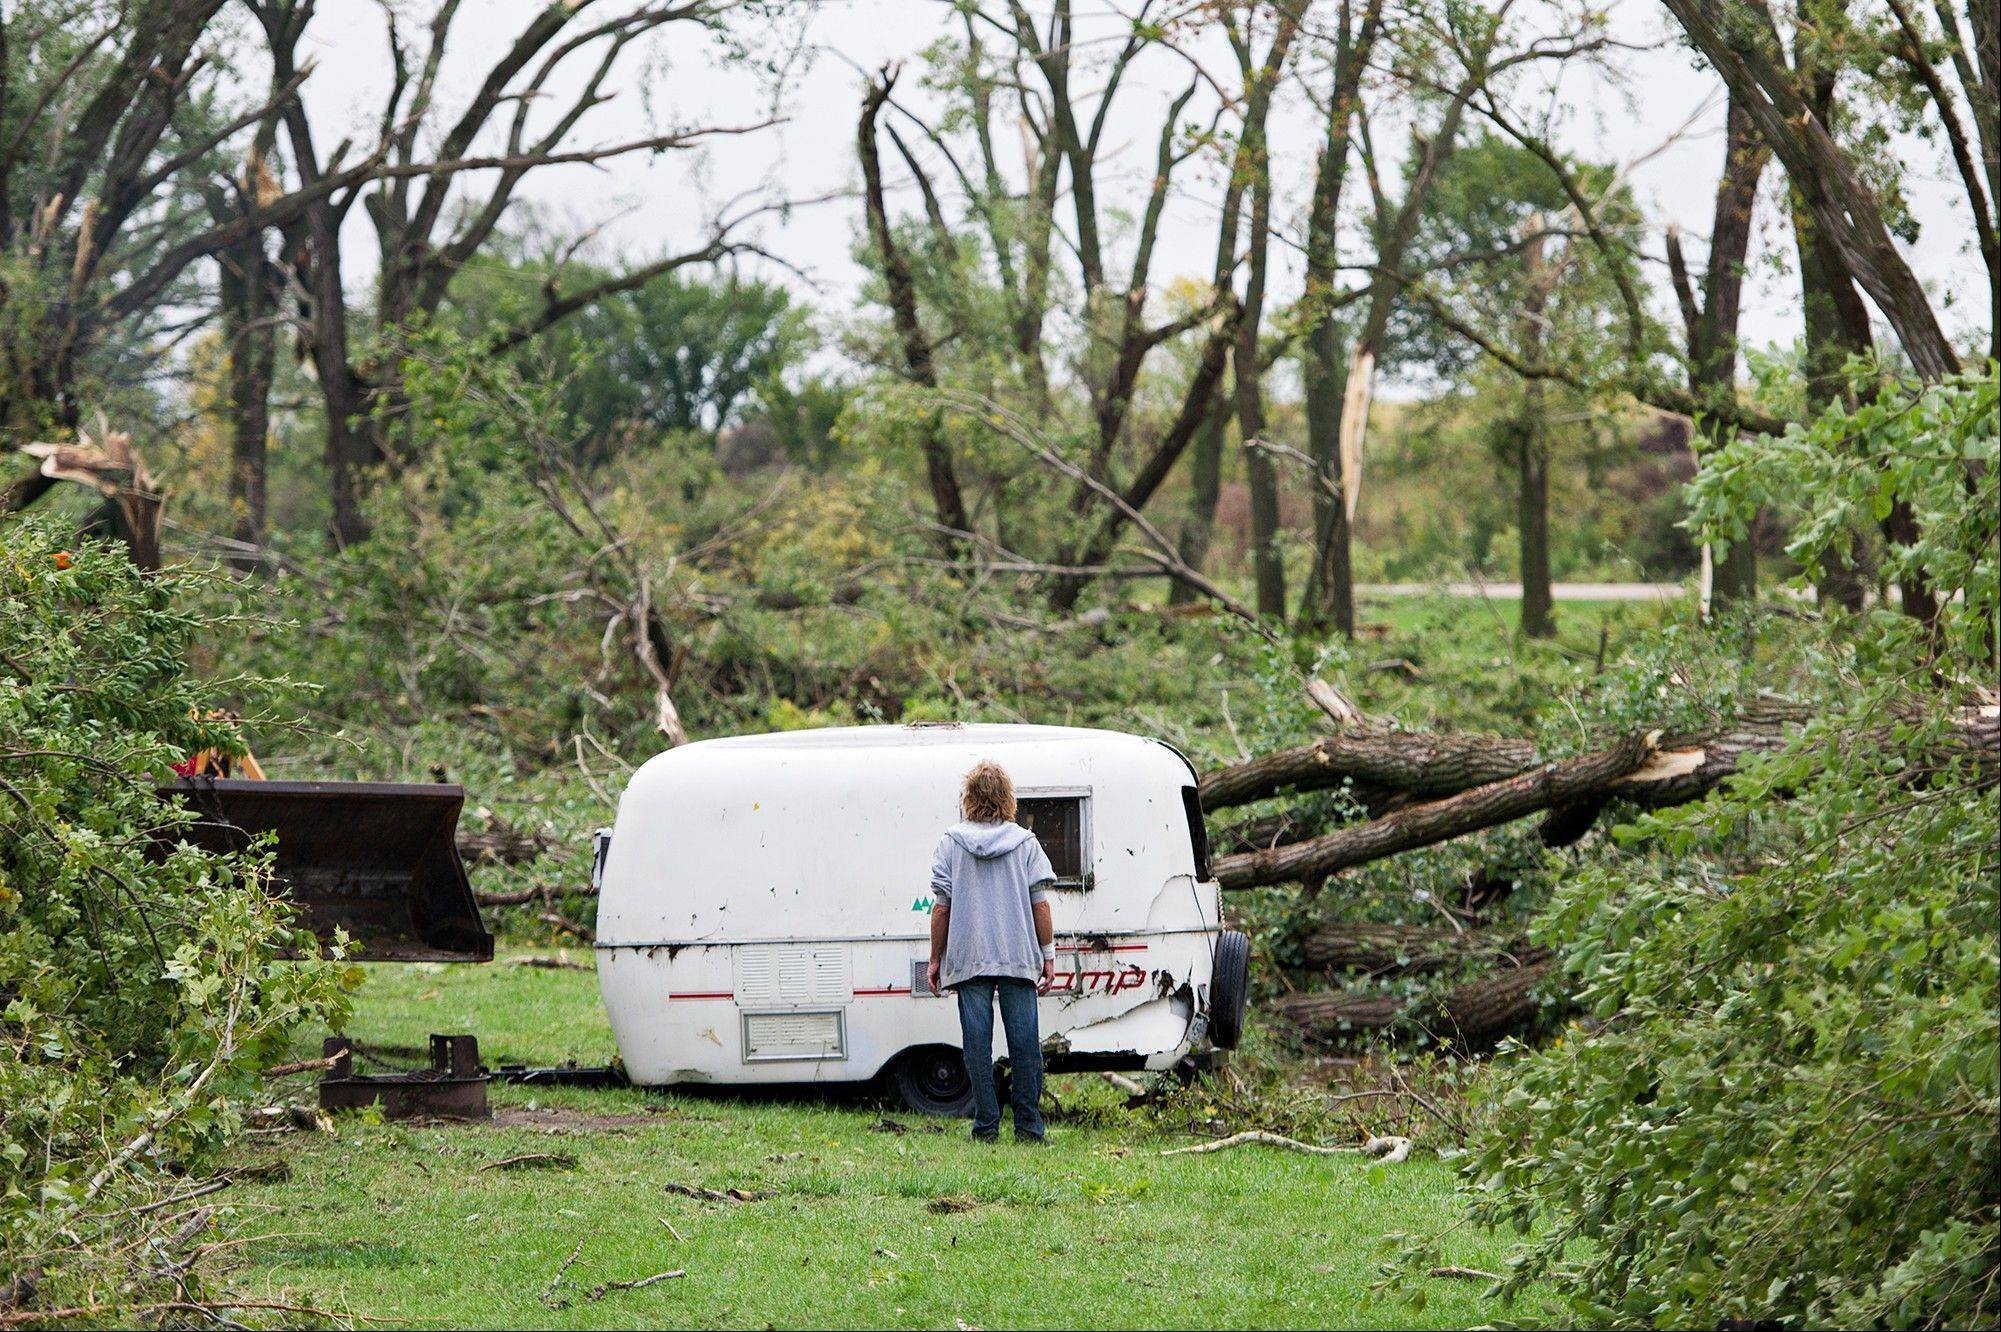 Jim Stoddard watches as his travel trailer is pulled from a ditch at the Wagon Train Lake campground on Friday, Oct. 4, 2013 in Hickman, Neb. Powerful storms crawled into the Midwest on Friday, dumping heavy snow in South Dakota, spawning a tornado in Nebraska and threatening dangerous thunderstorms from Oklahoma to Wisconsin.